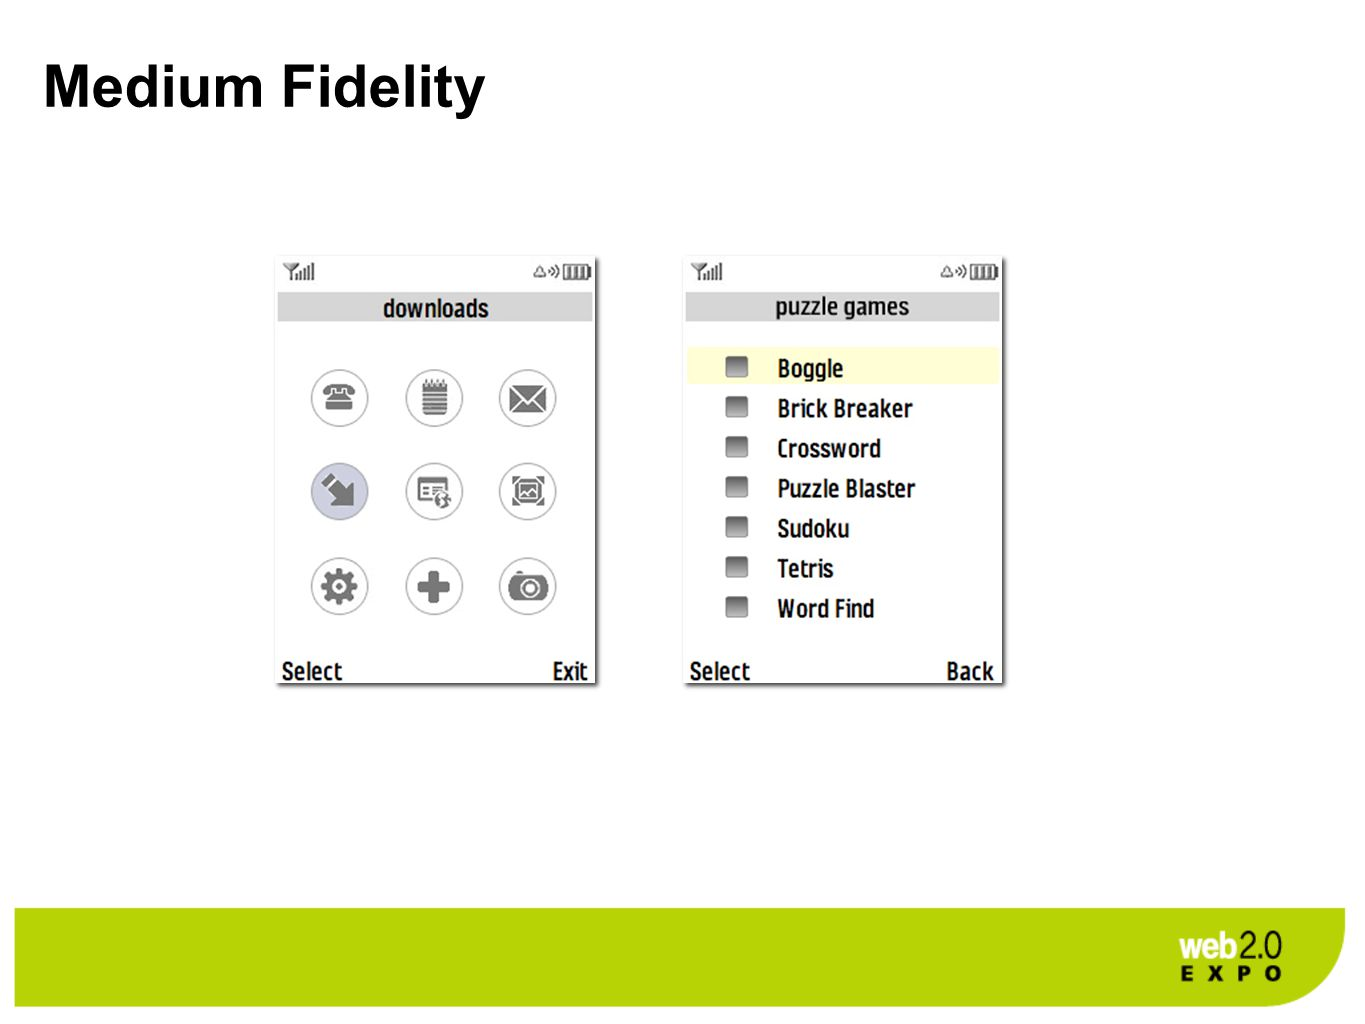 Medium Fidelity